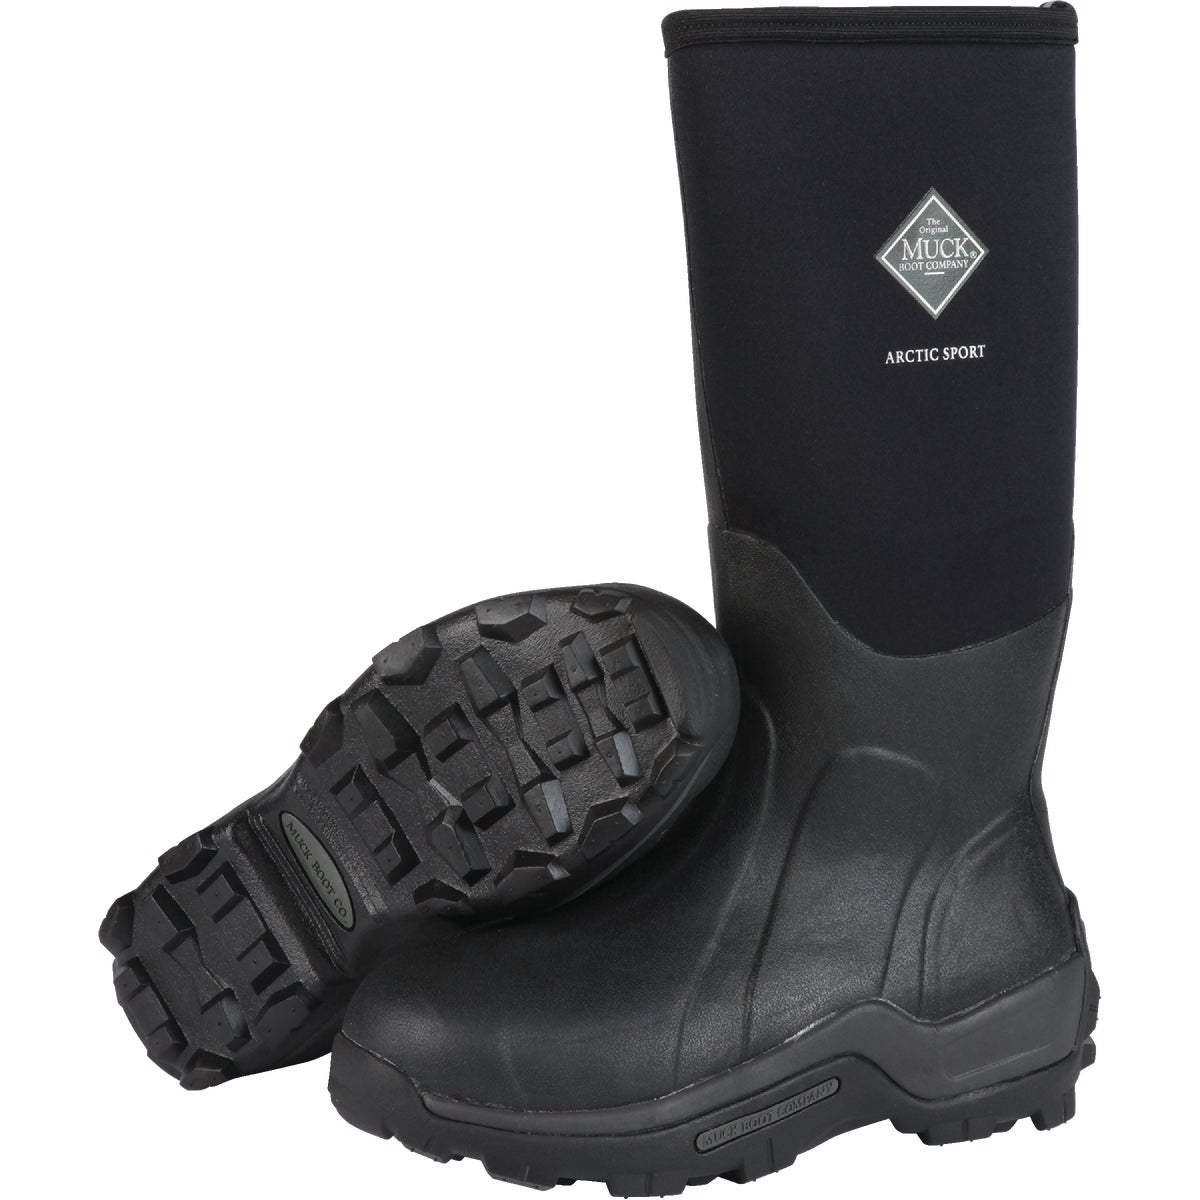 SZ 9 ARTIC SPORT HI BOOT - ASP000-9 by Muck Boot Team J